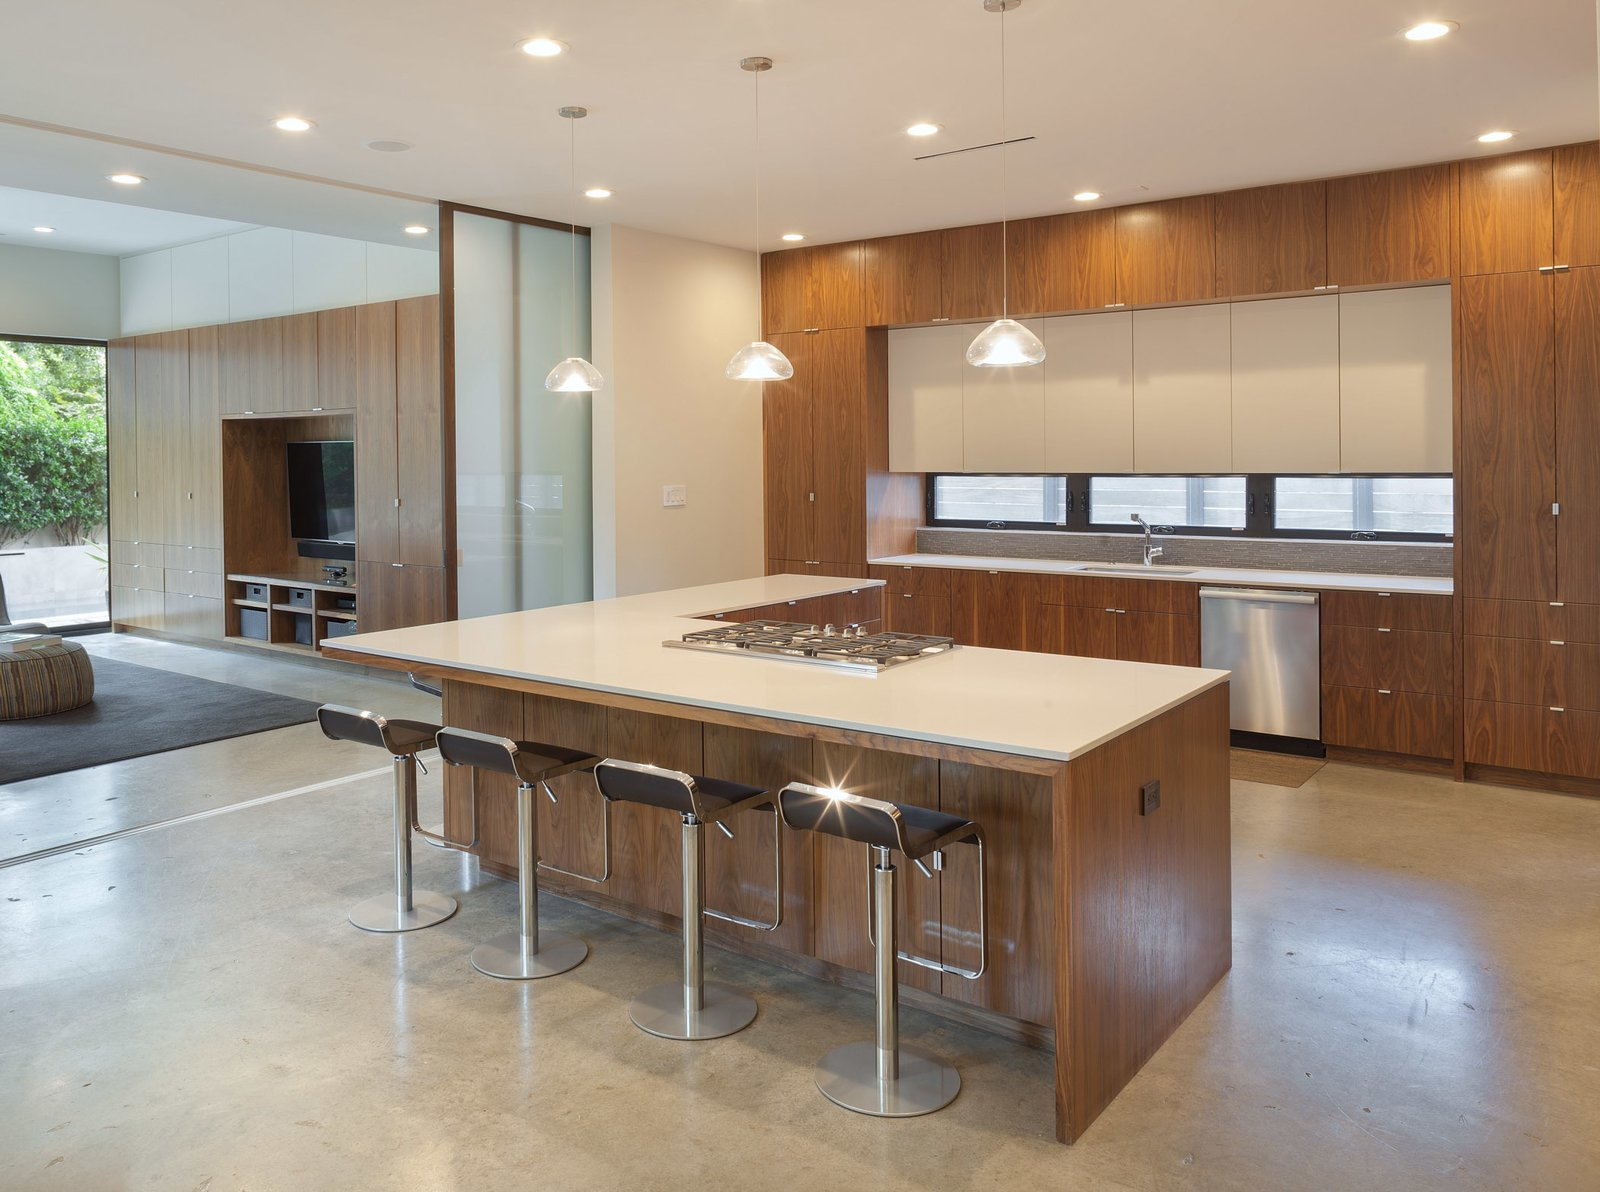 Tagged: Kitchen and Dishwasher.  Tangley by studioMET architects